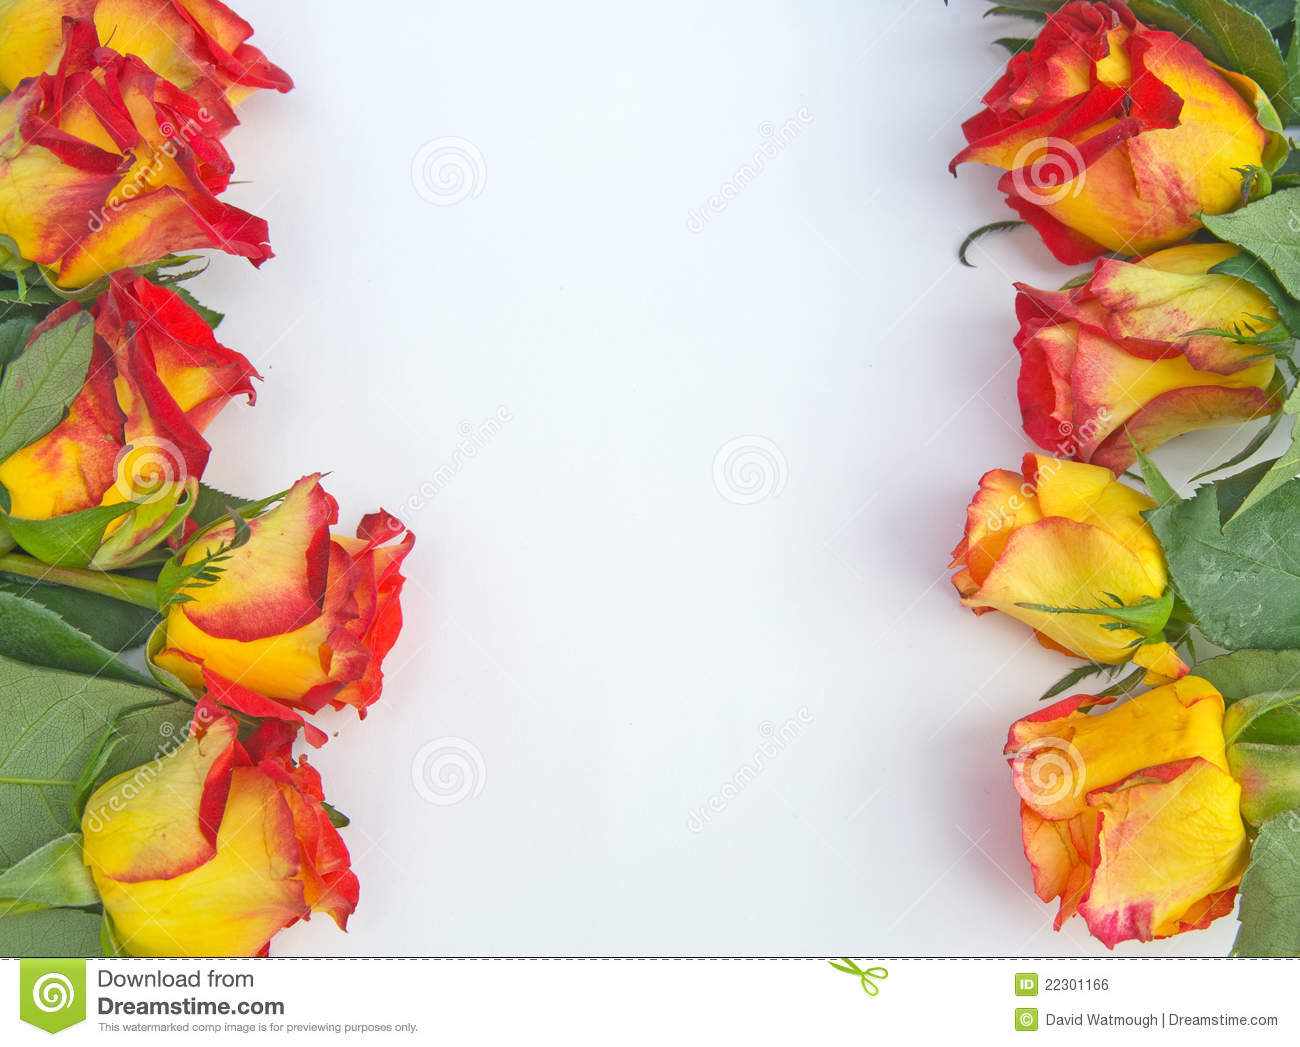 Cream And Red Rose Border. Royalty Free Stock Image - Image: 22301166